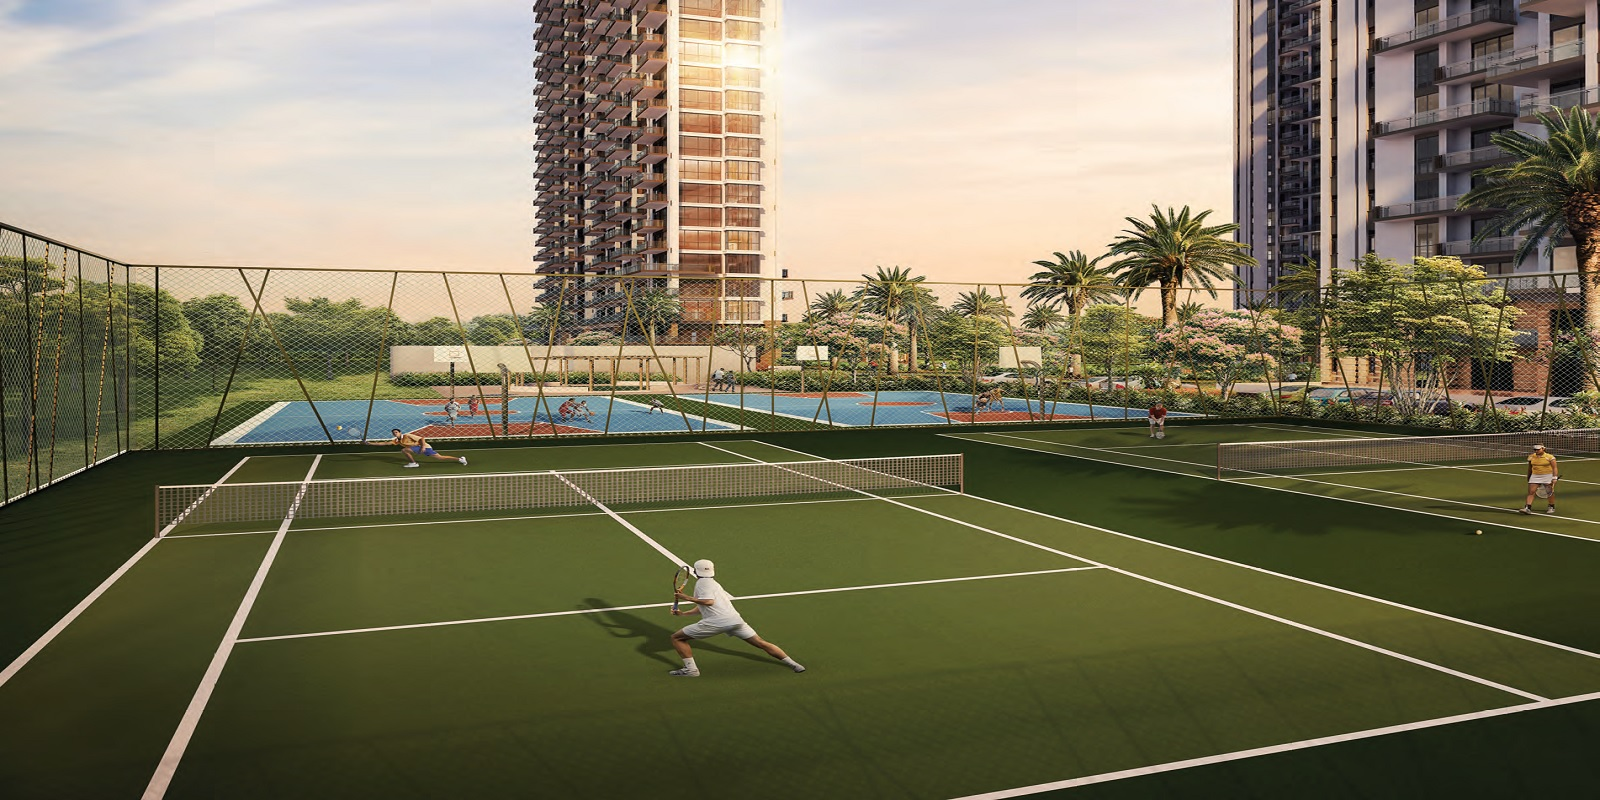 amenities-features-Picture-conscient-heritage-max-2721109